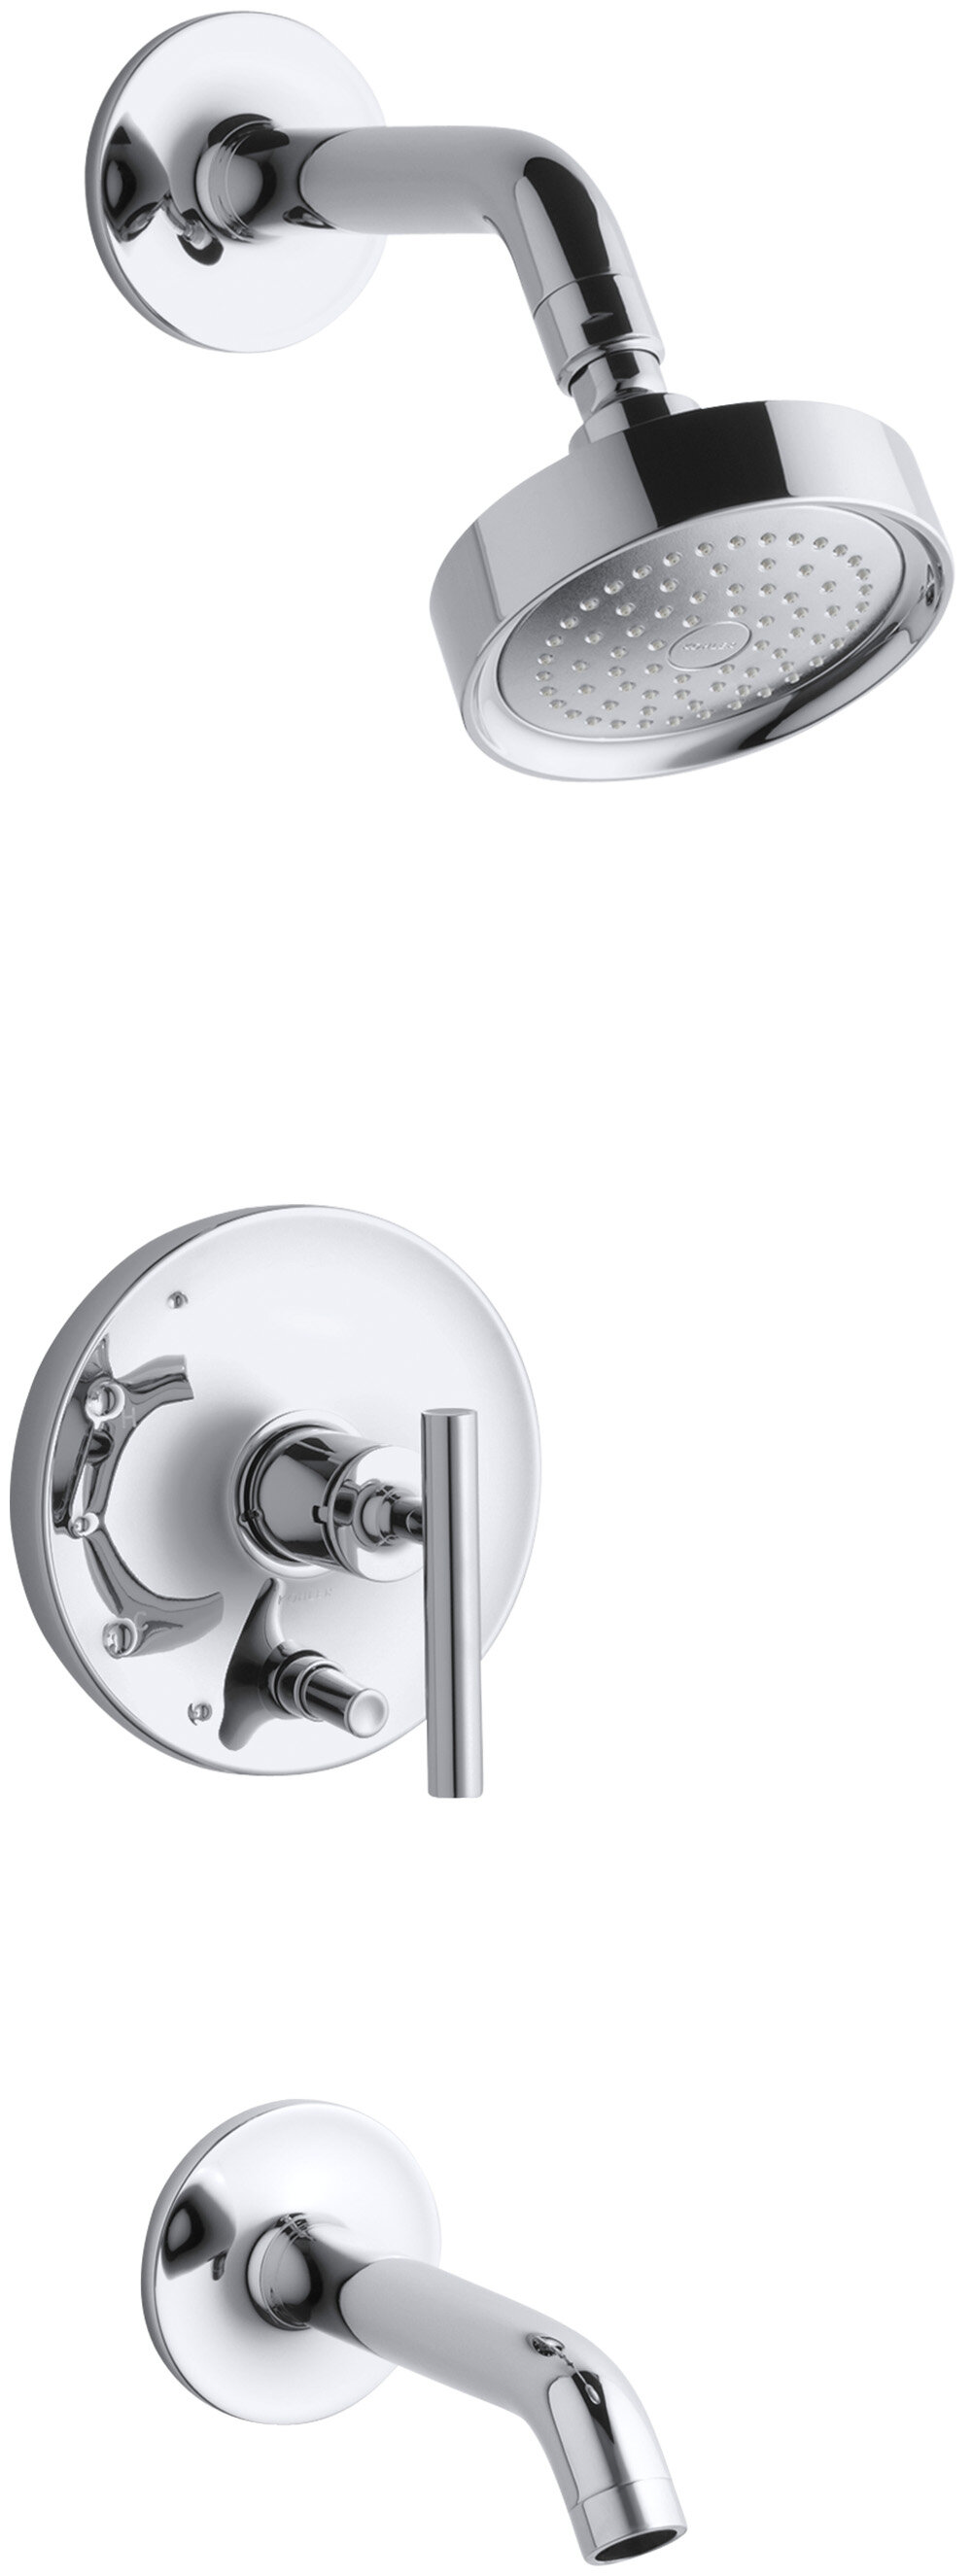 tub stn nickel kit carrington shower not s and trim valve symmons in p faucets chrome diverter satin kits sink included faucet trm handle